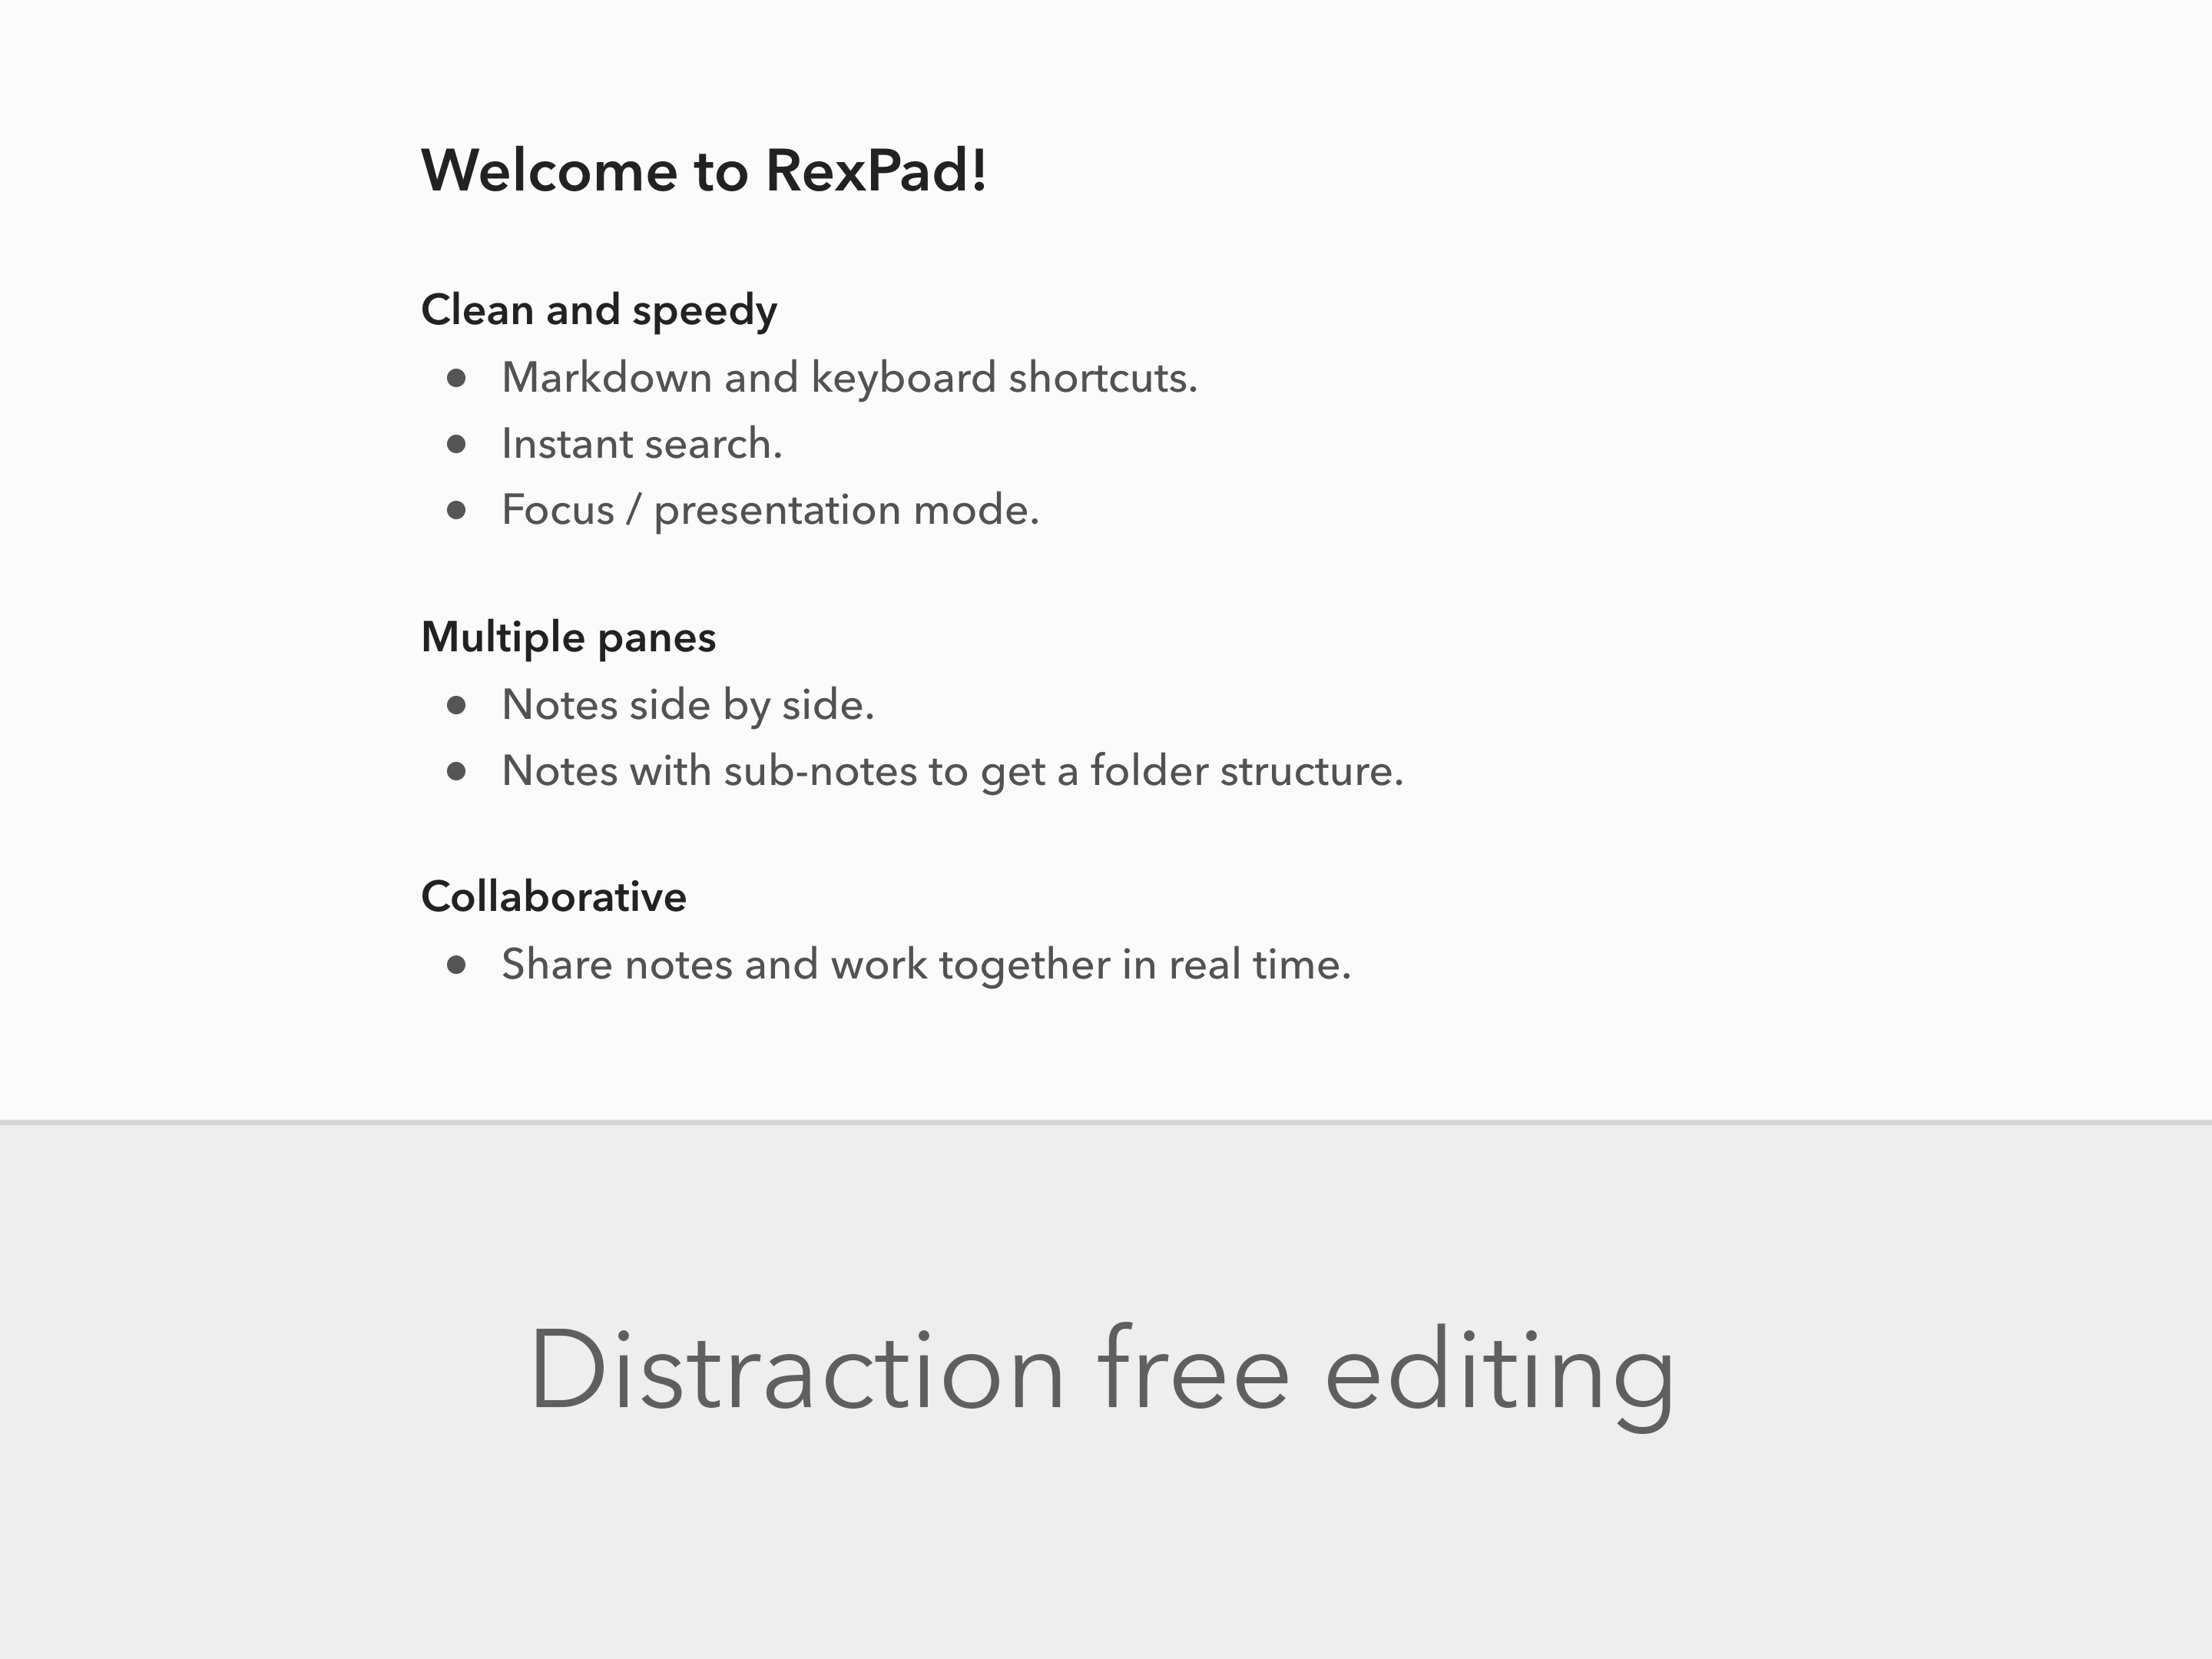 RexPad Alternatives and Similar Websites and Apps